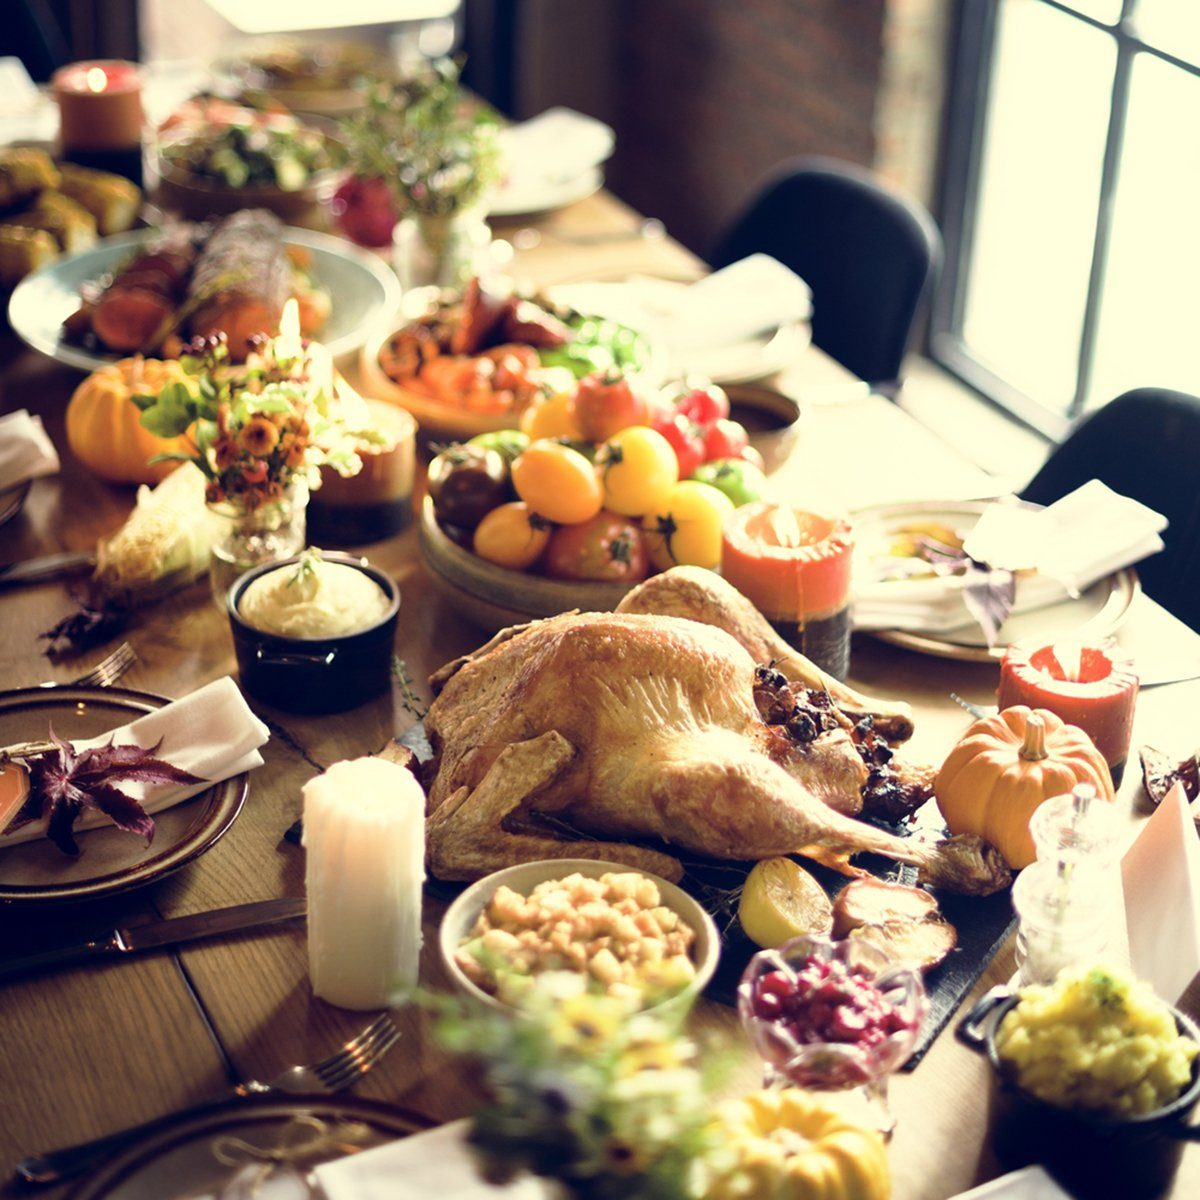 Roasted Turkey Thanksgiving Tradition Celebration Concept